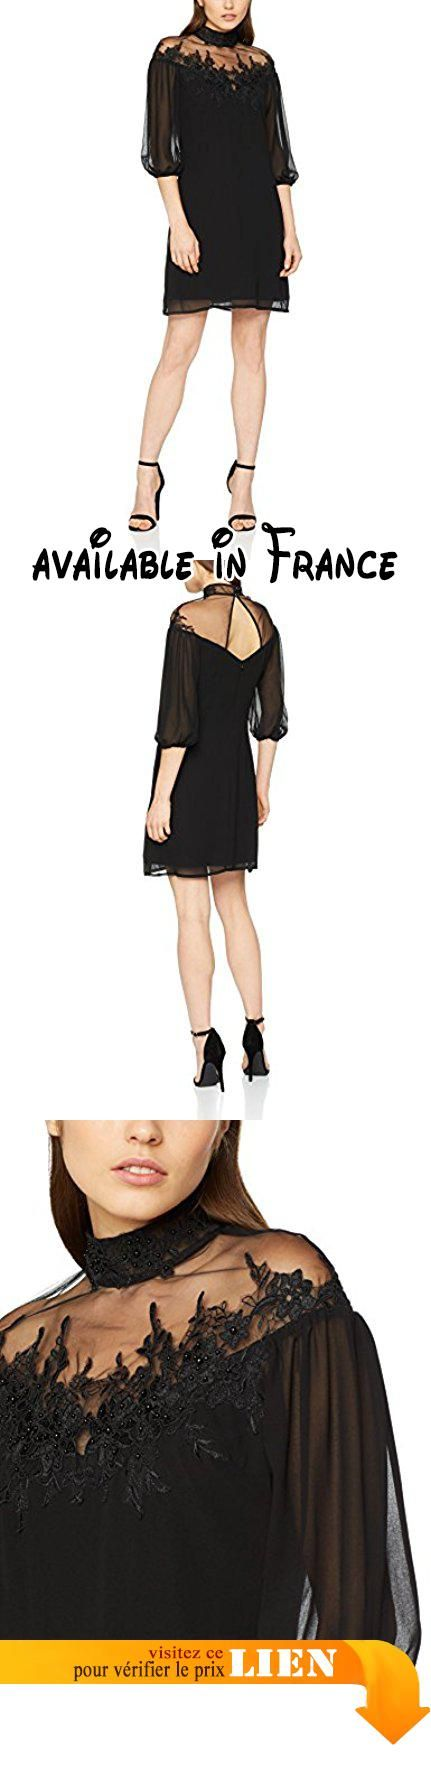 B0773VDRRK : Little Mistress L7976WIA Robe Cocktail Manches 3/4 Femme noir 38 (Taille fabricant: 10).